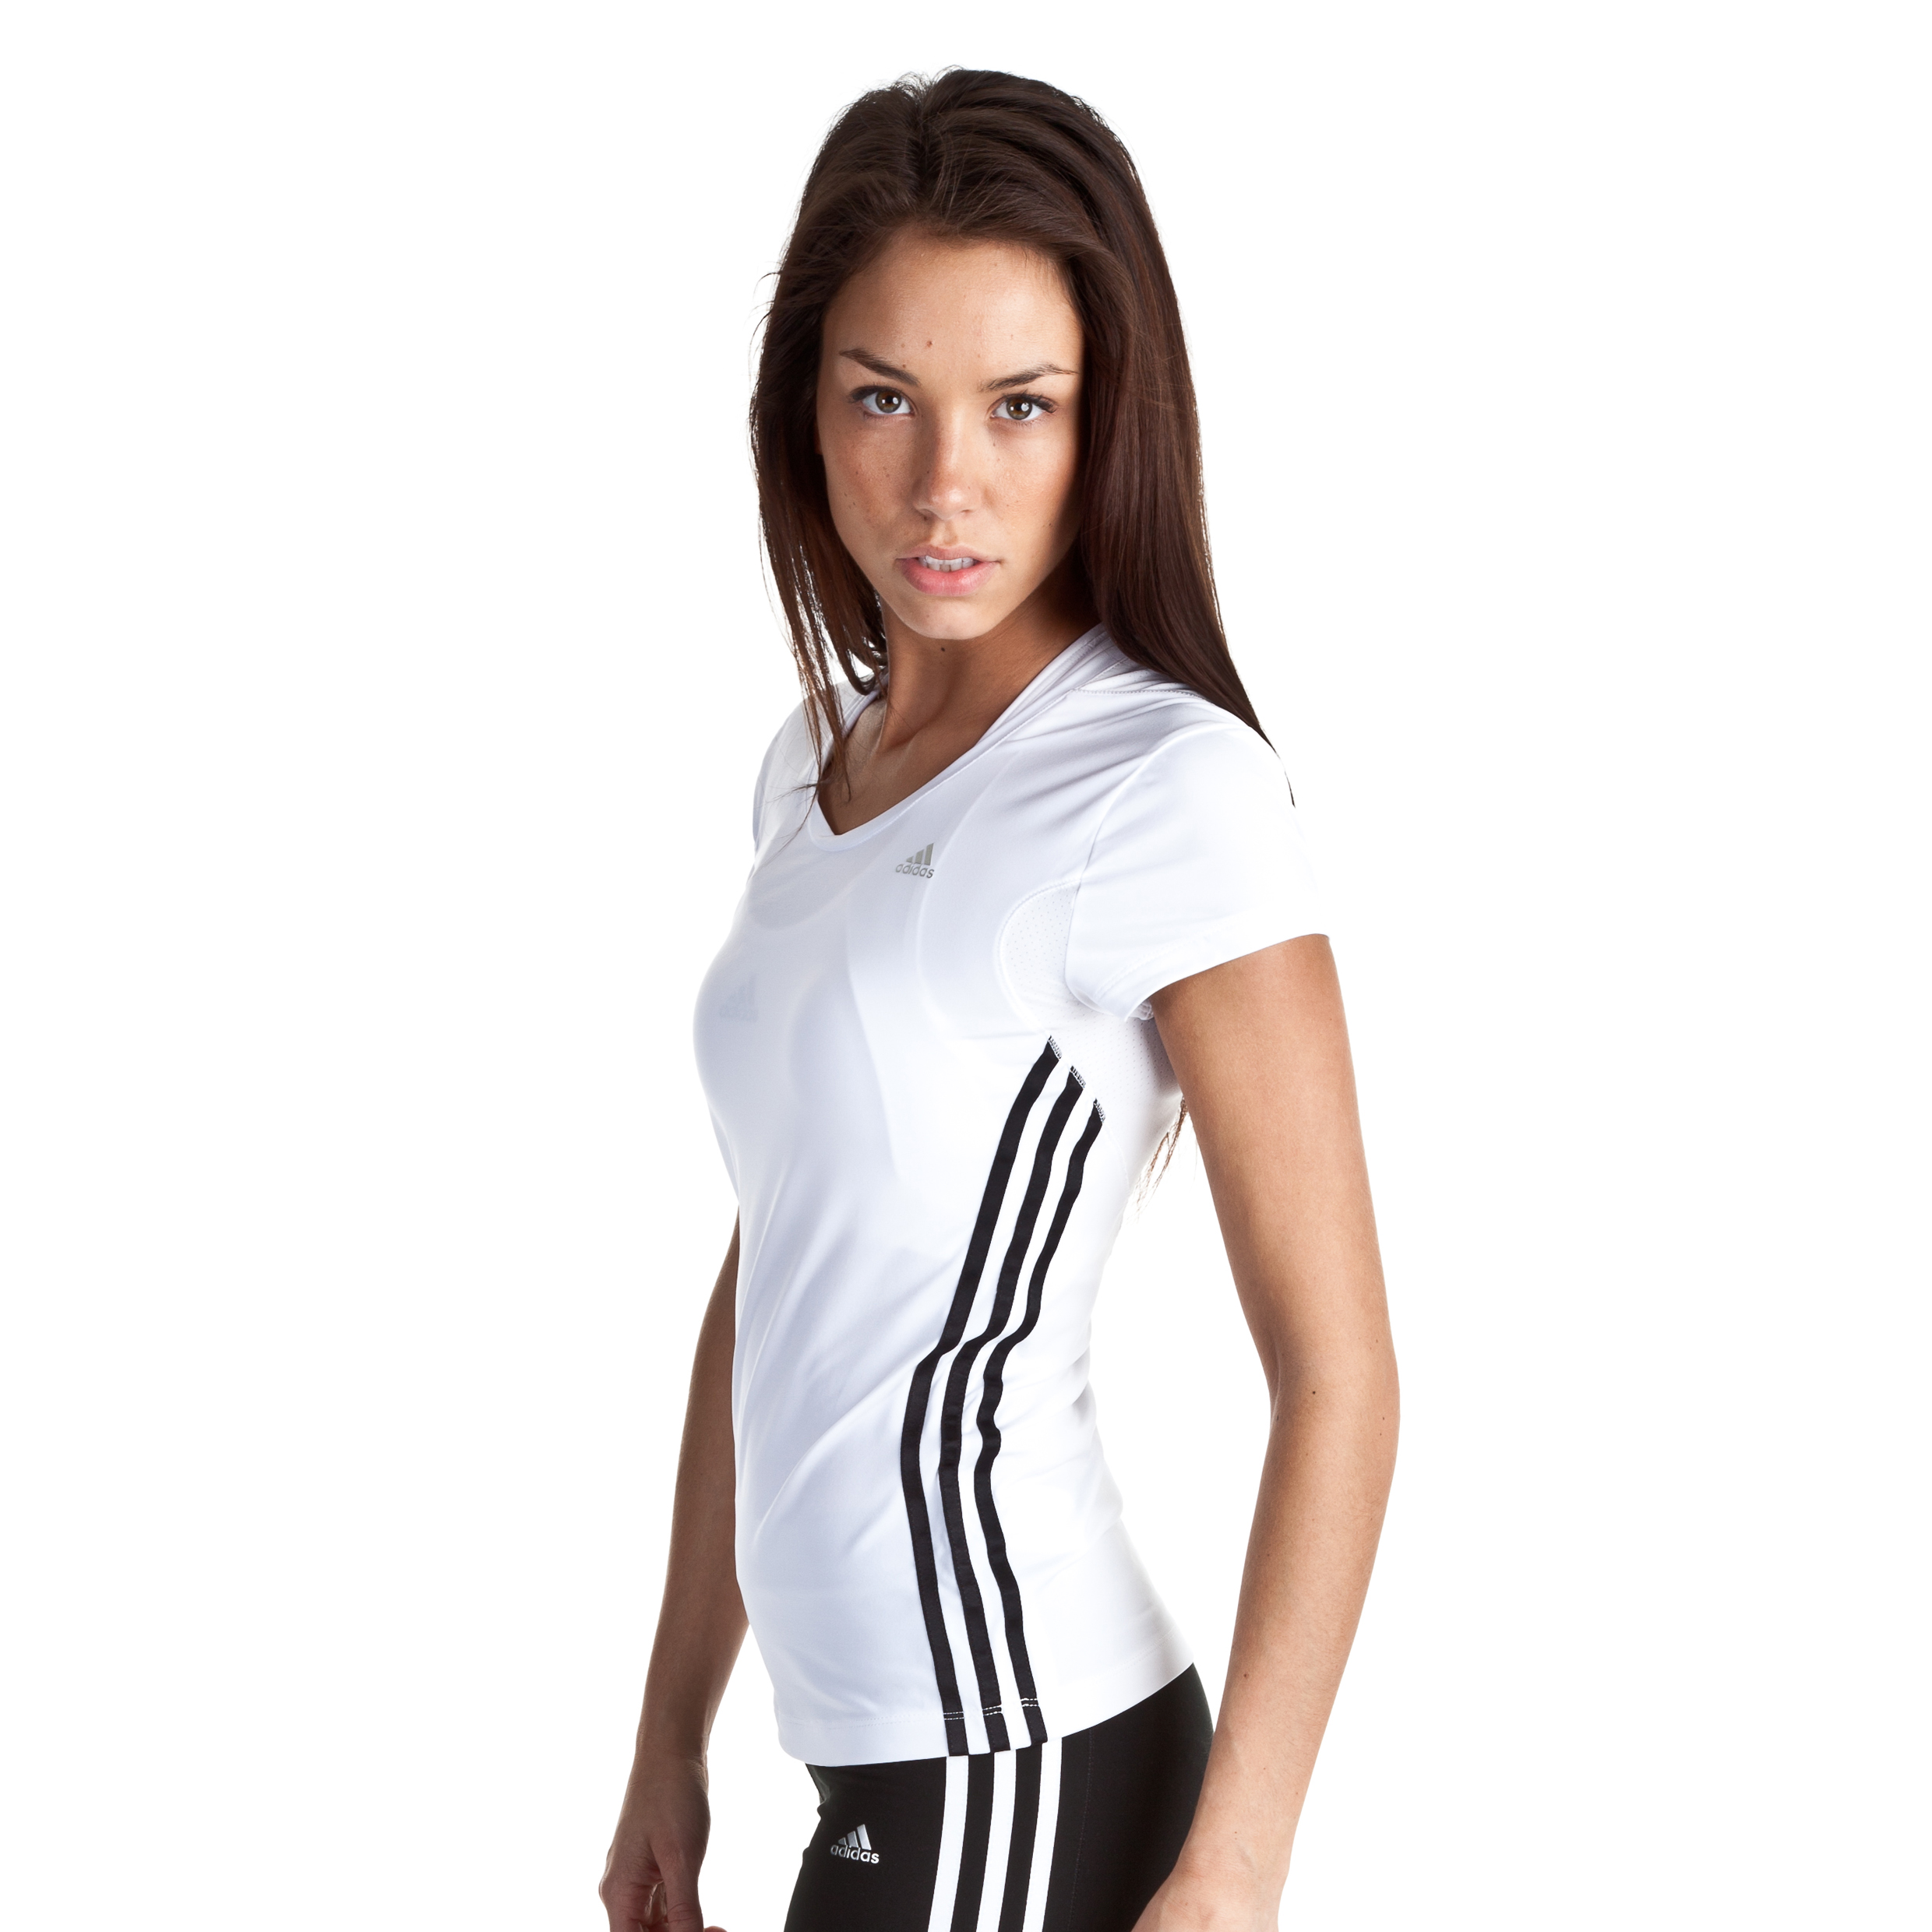 Adidas Climacool Core Tee - White/Black/Matte Silver - Womens